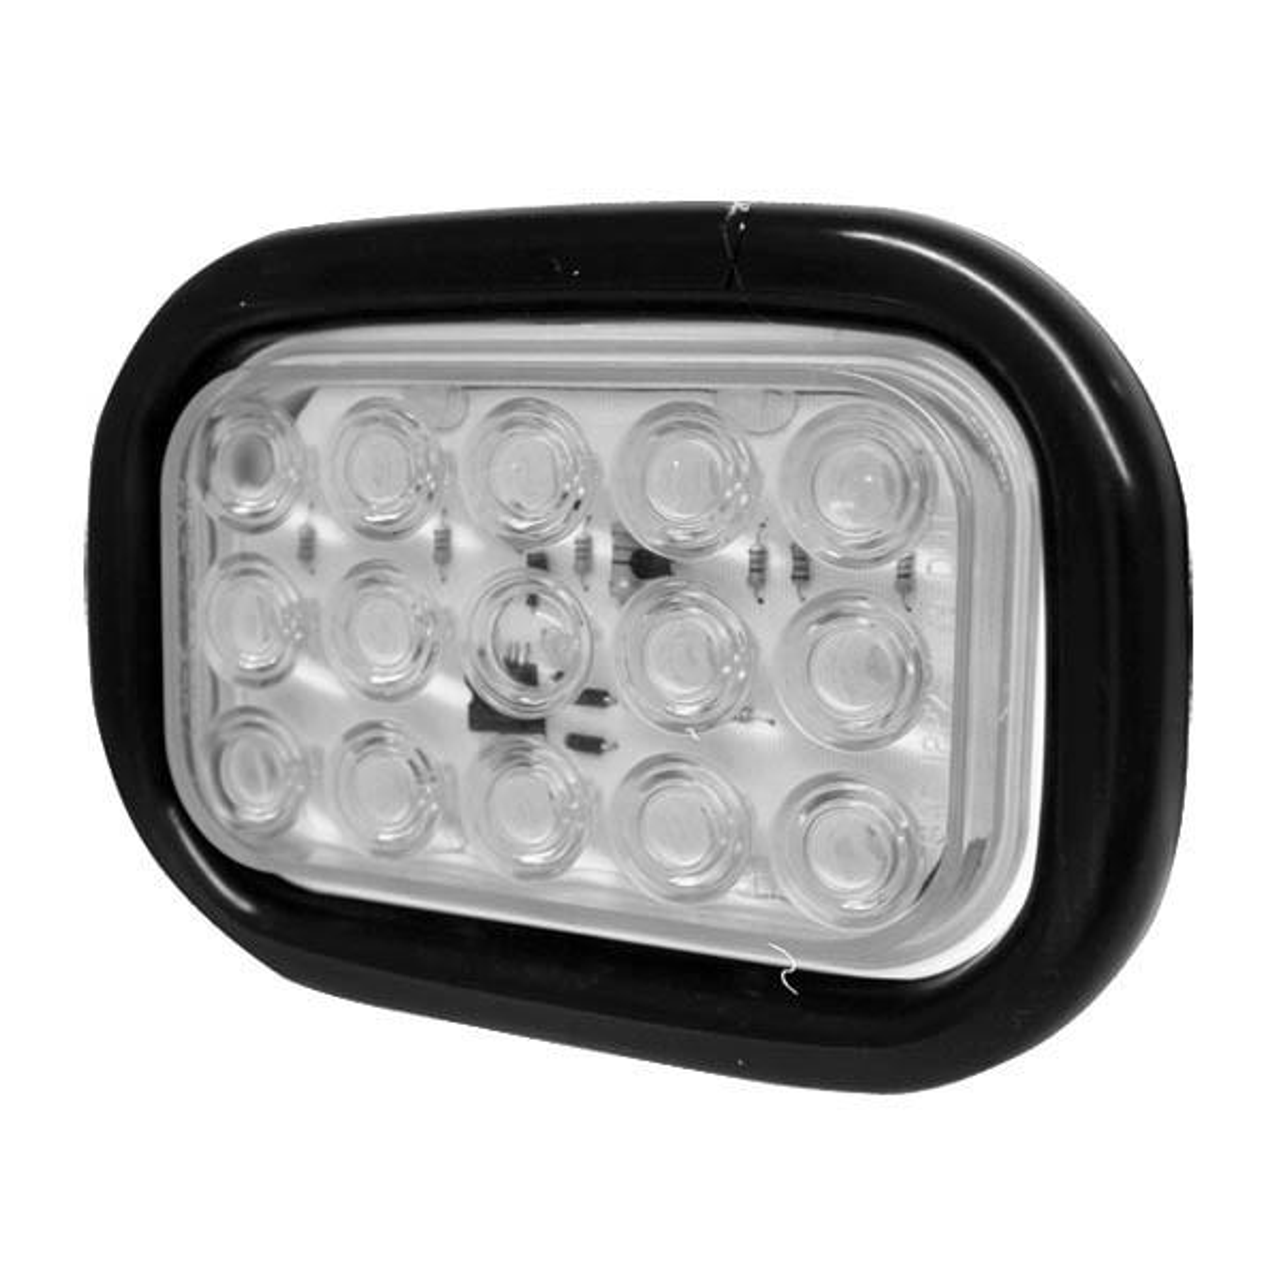 6 1 2 X 4 1 2 Rectangular Clear 15 Led Reverse Backup Light W Rubber Grommet 3 Prong Plug